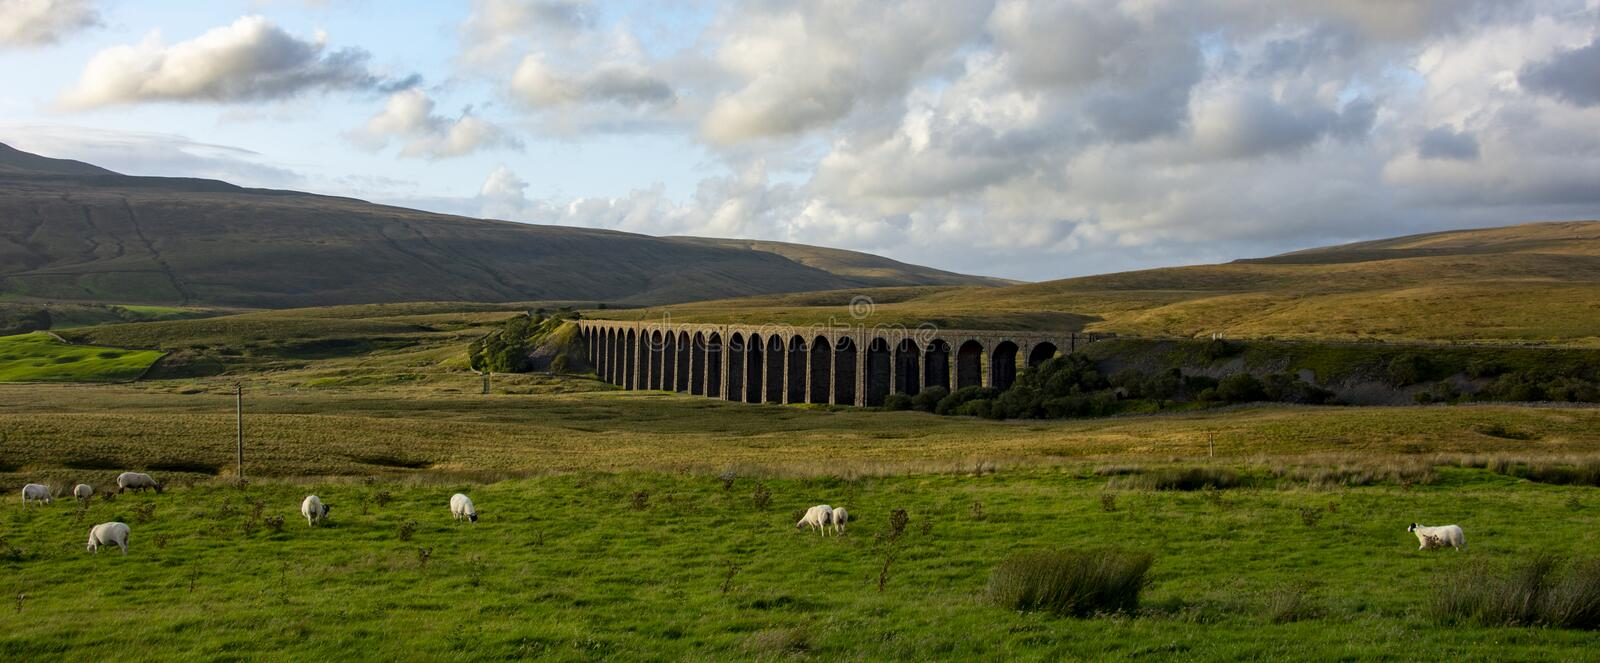 Ribblehead Viaduct in the Yorkshie Dales, UK. The Ribblehead Viaduct in the Yorkshire Dales in the UK. Also known as Batty Moss Viaduct is in the Ribble Valley royalty free stock photos